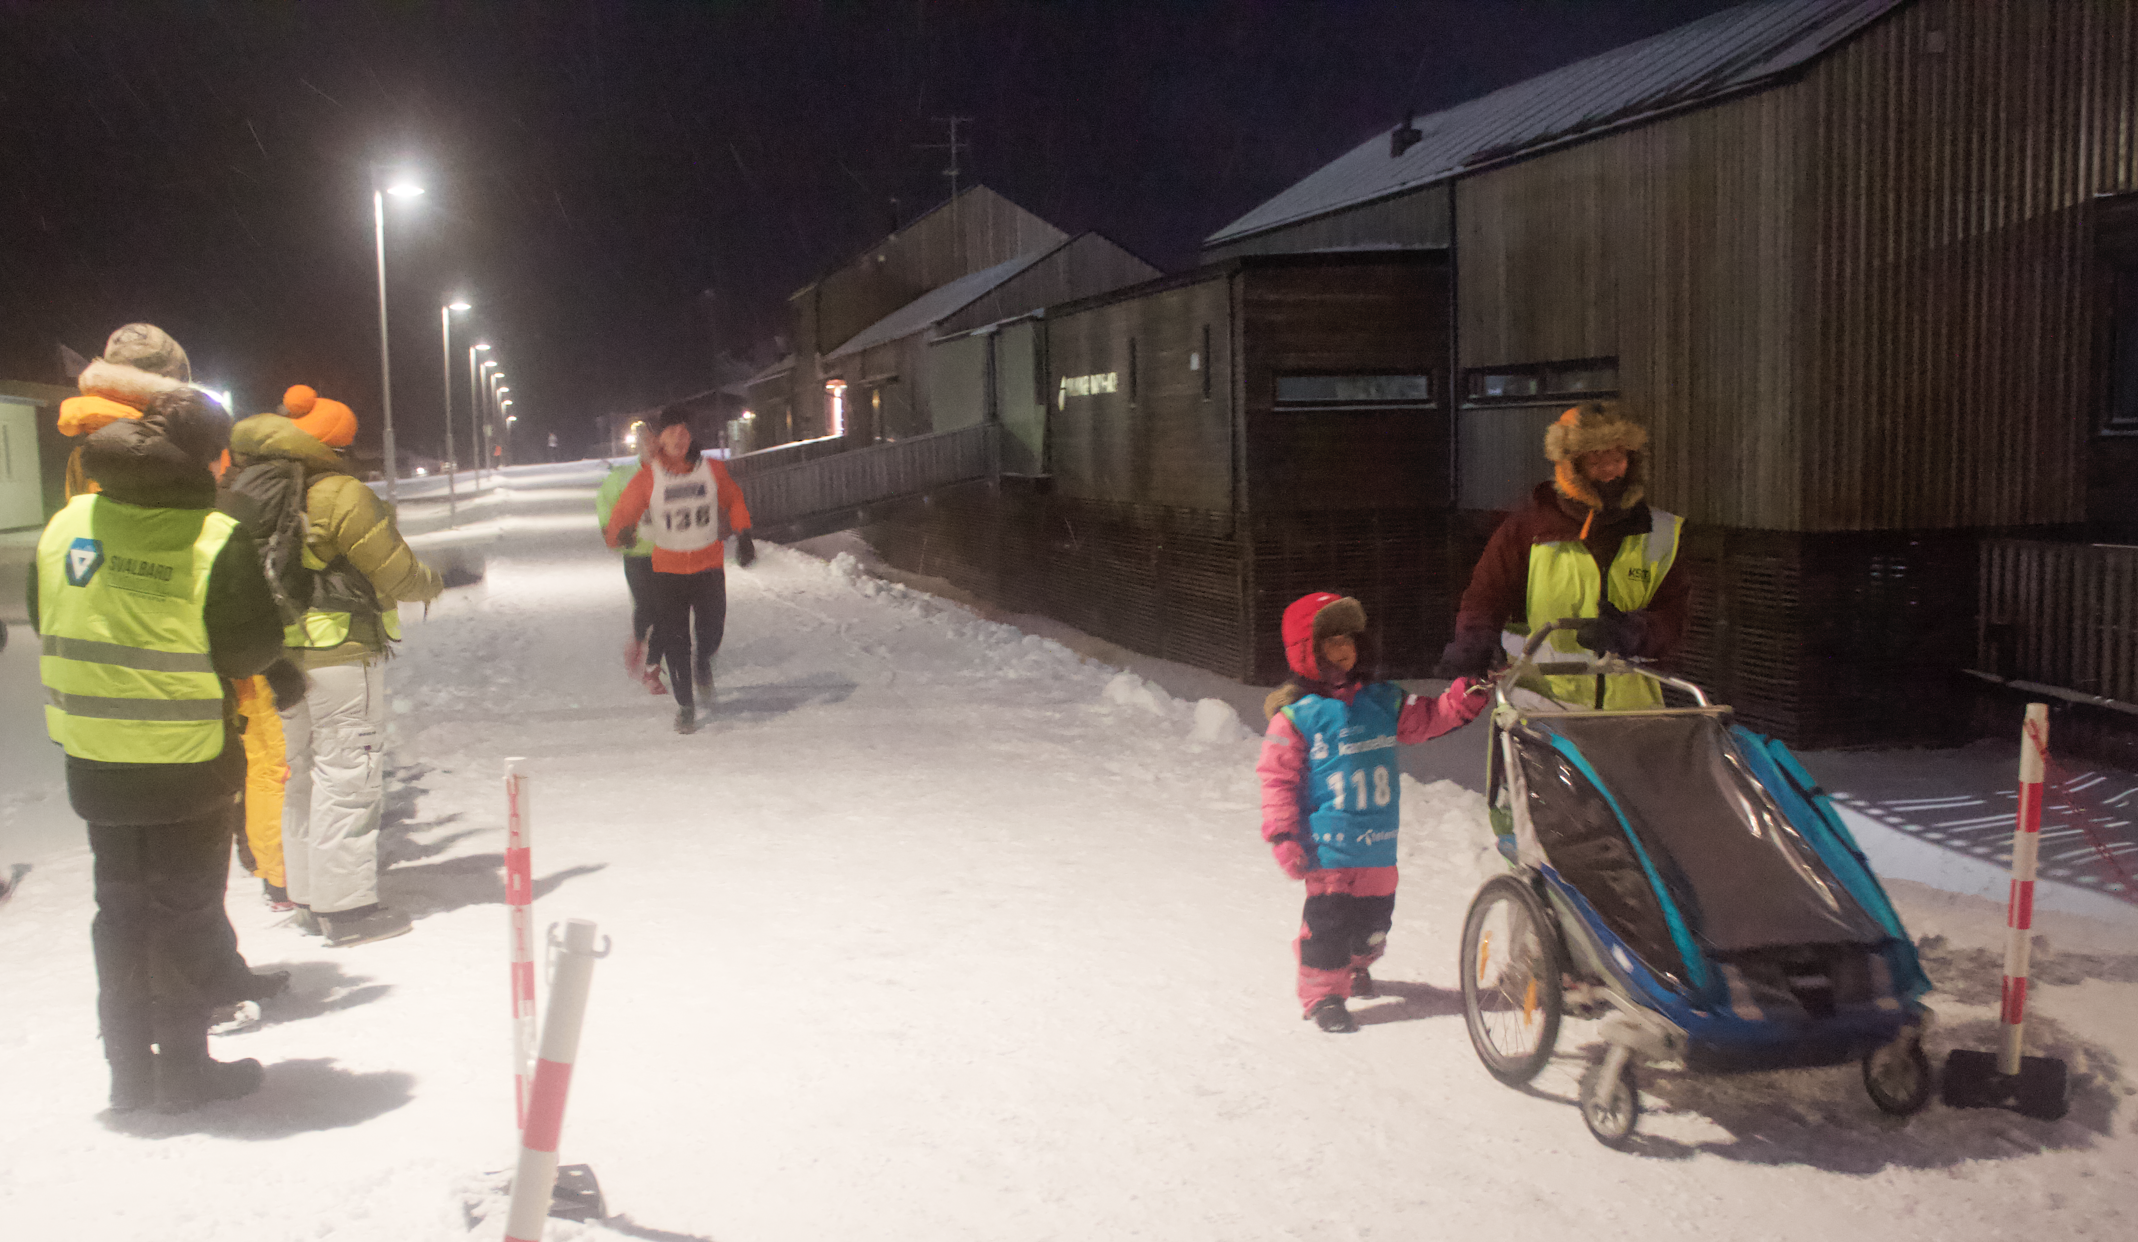 CELEBRATING CHRISTMAS AT WHATEVER IS YOUR SPEED: Full stocking of lively and leisurely traditional Svalbard events gets going, even in this year gone viral